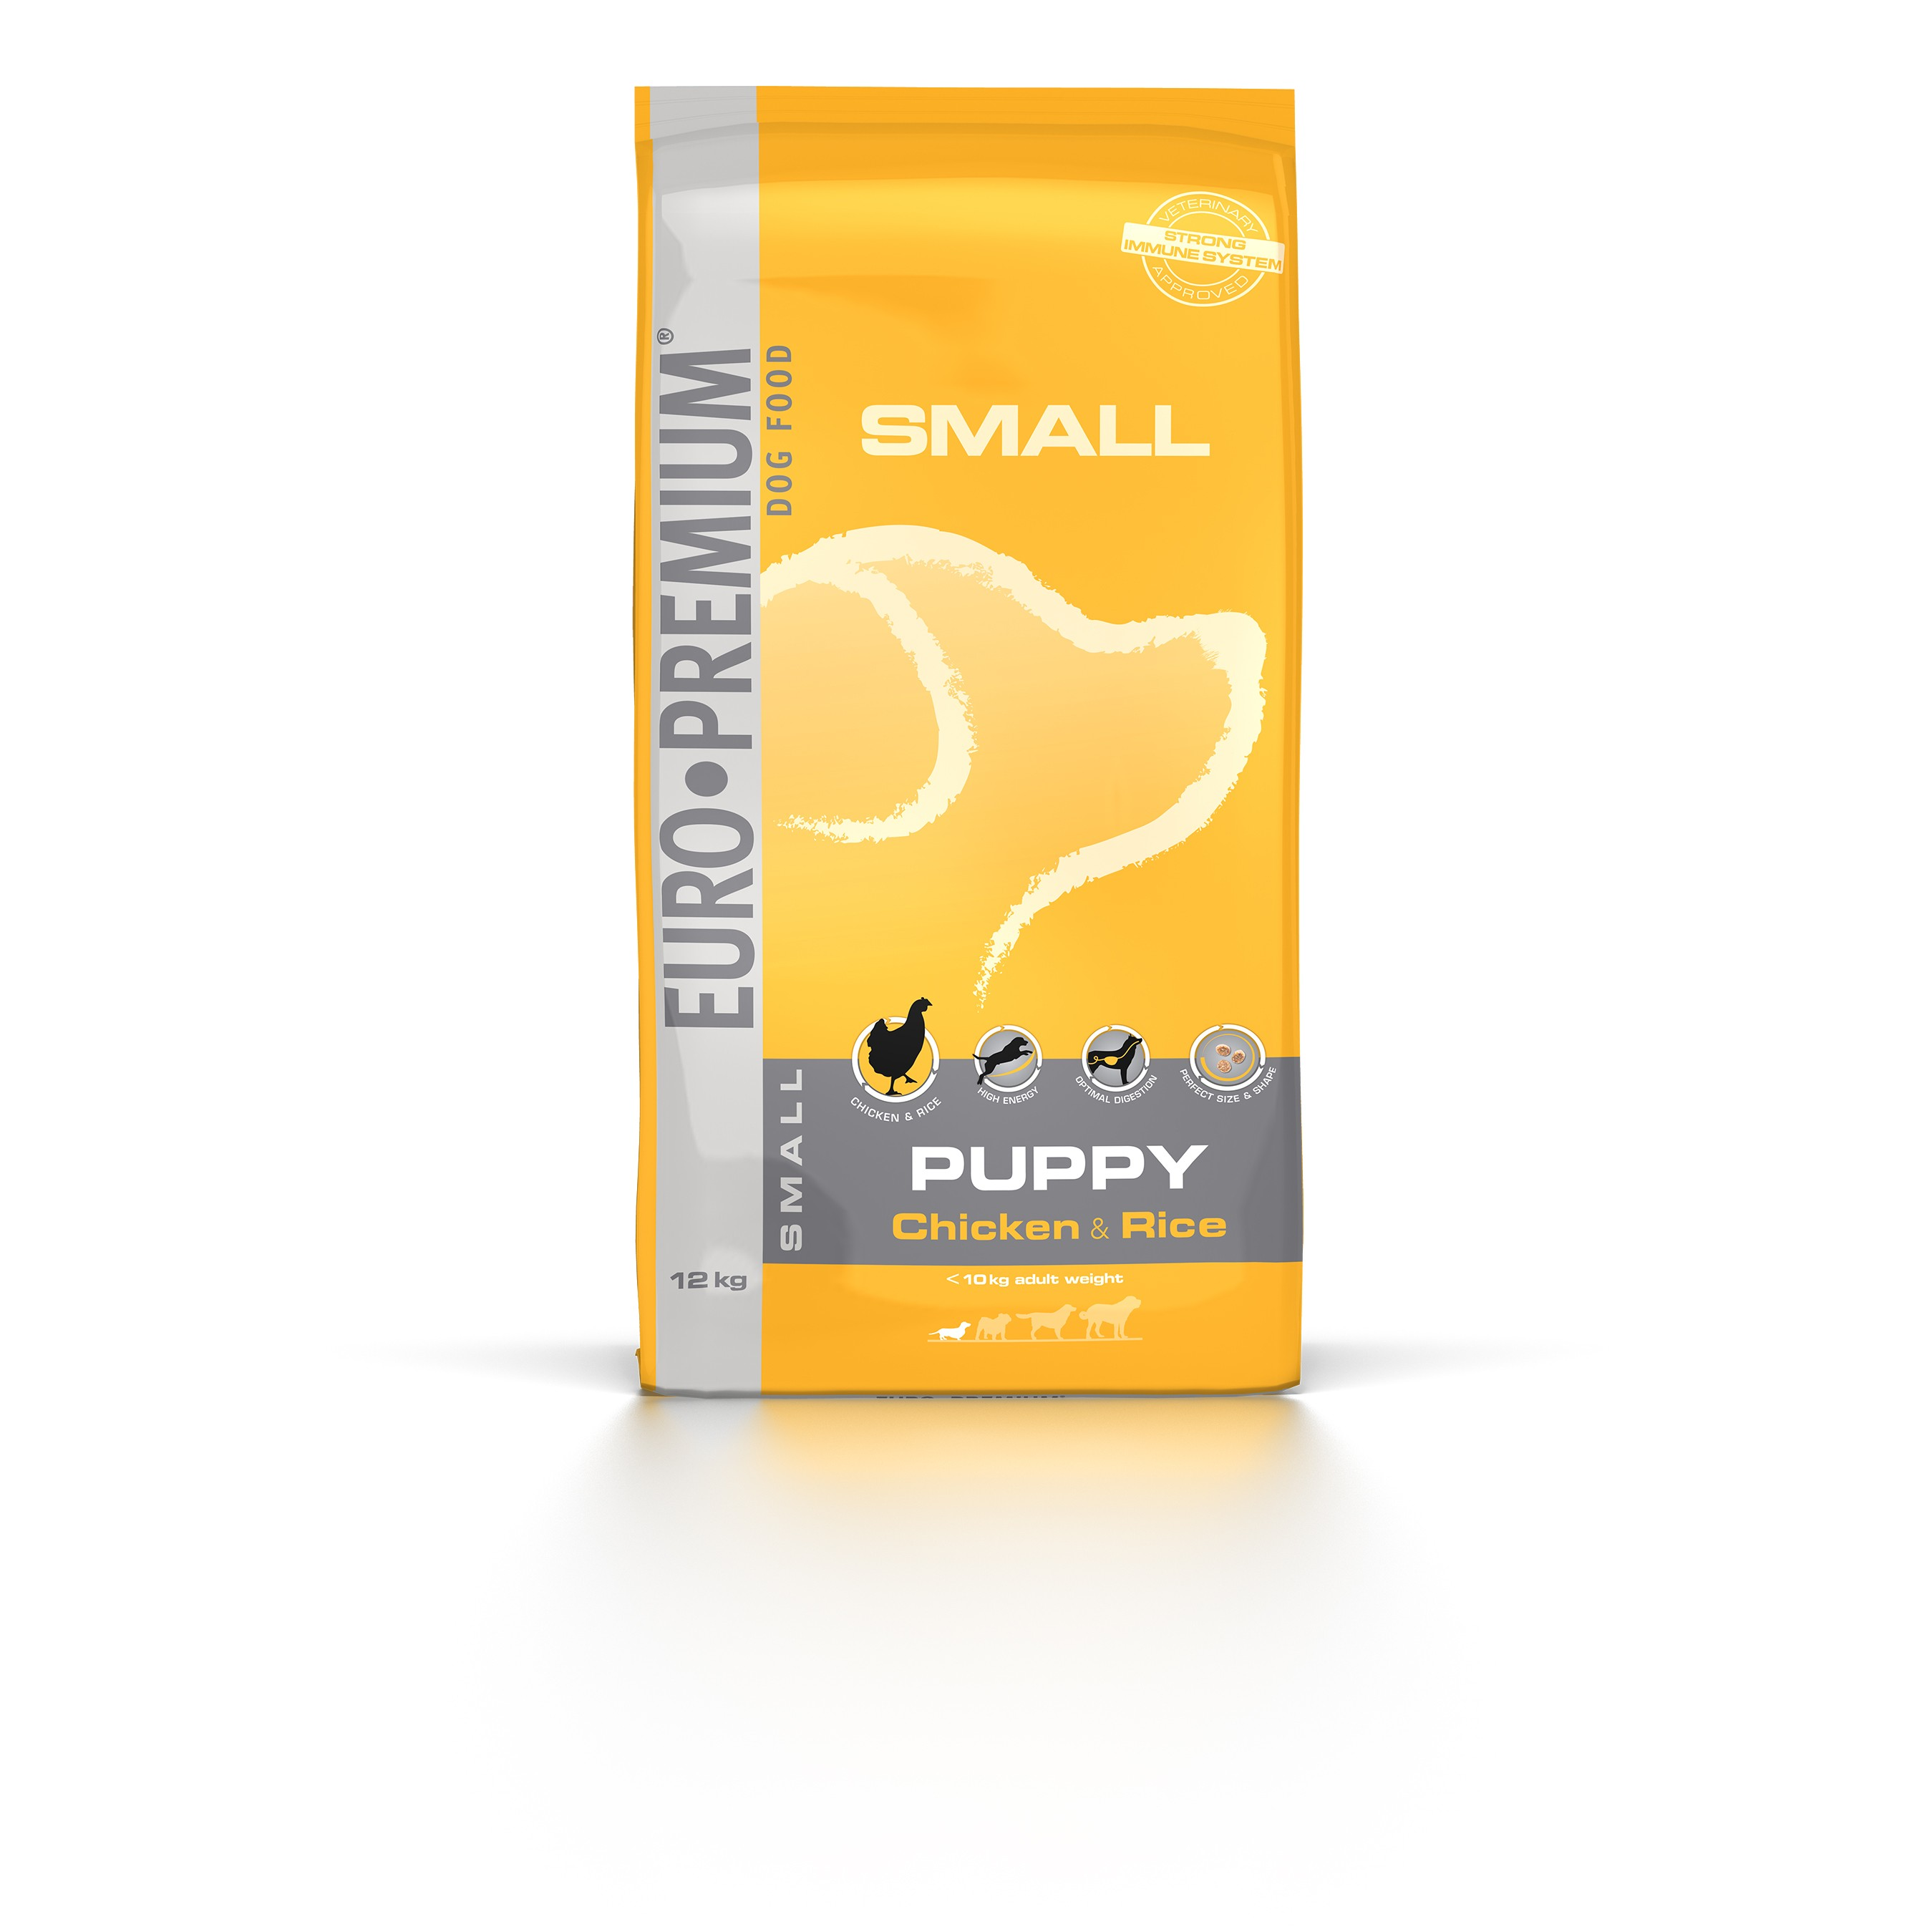 Euro Premium Small Puppy Huhn & Reis Hundefutter